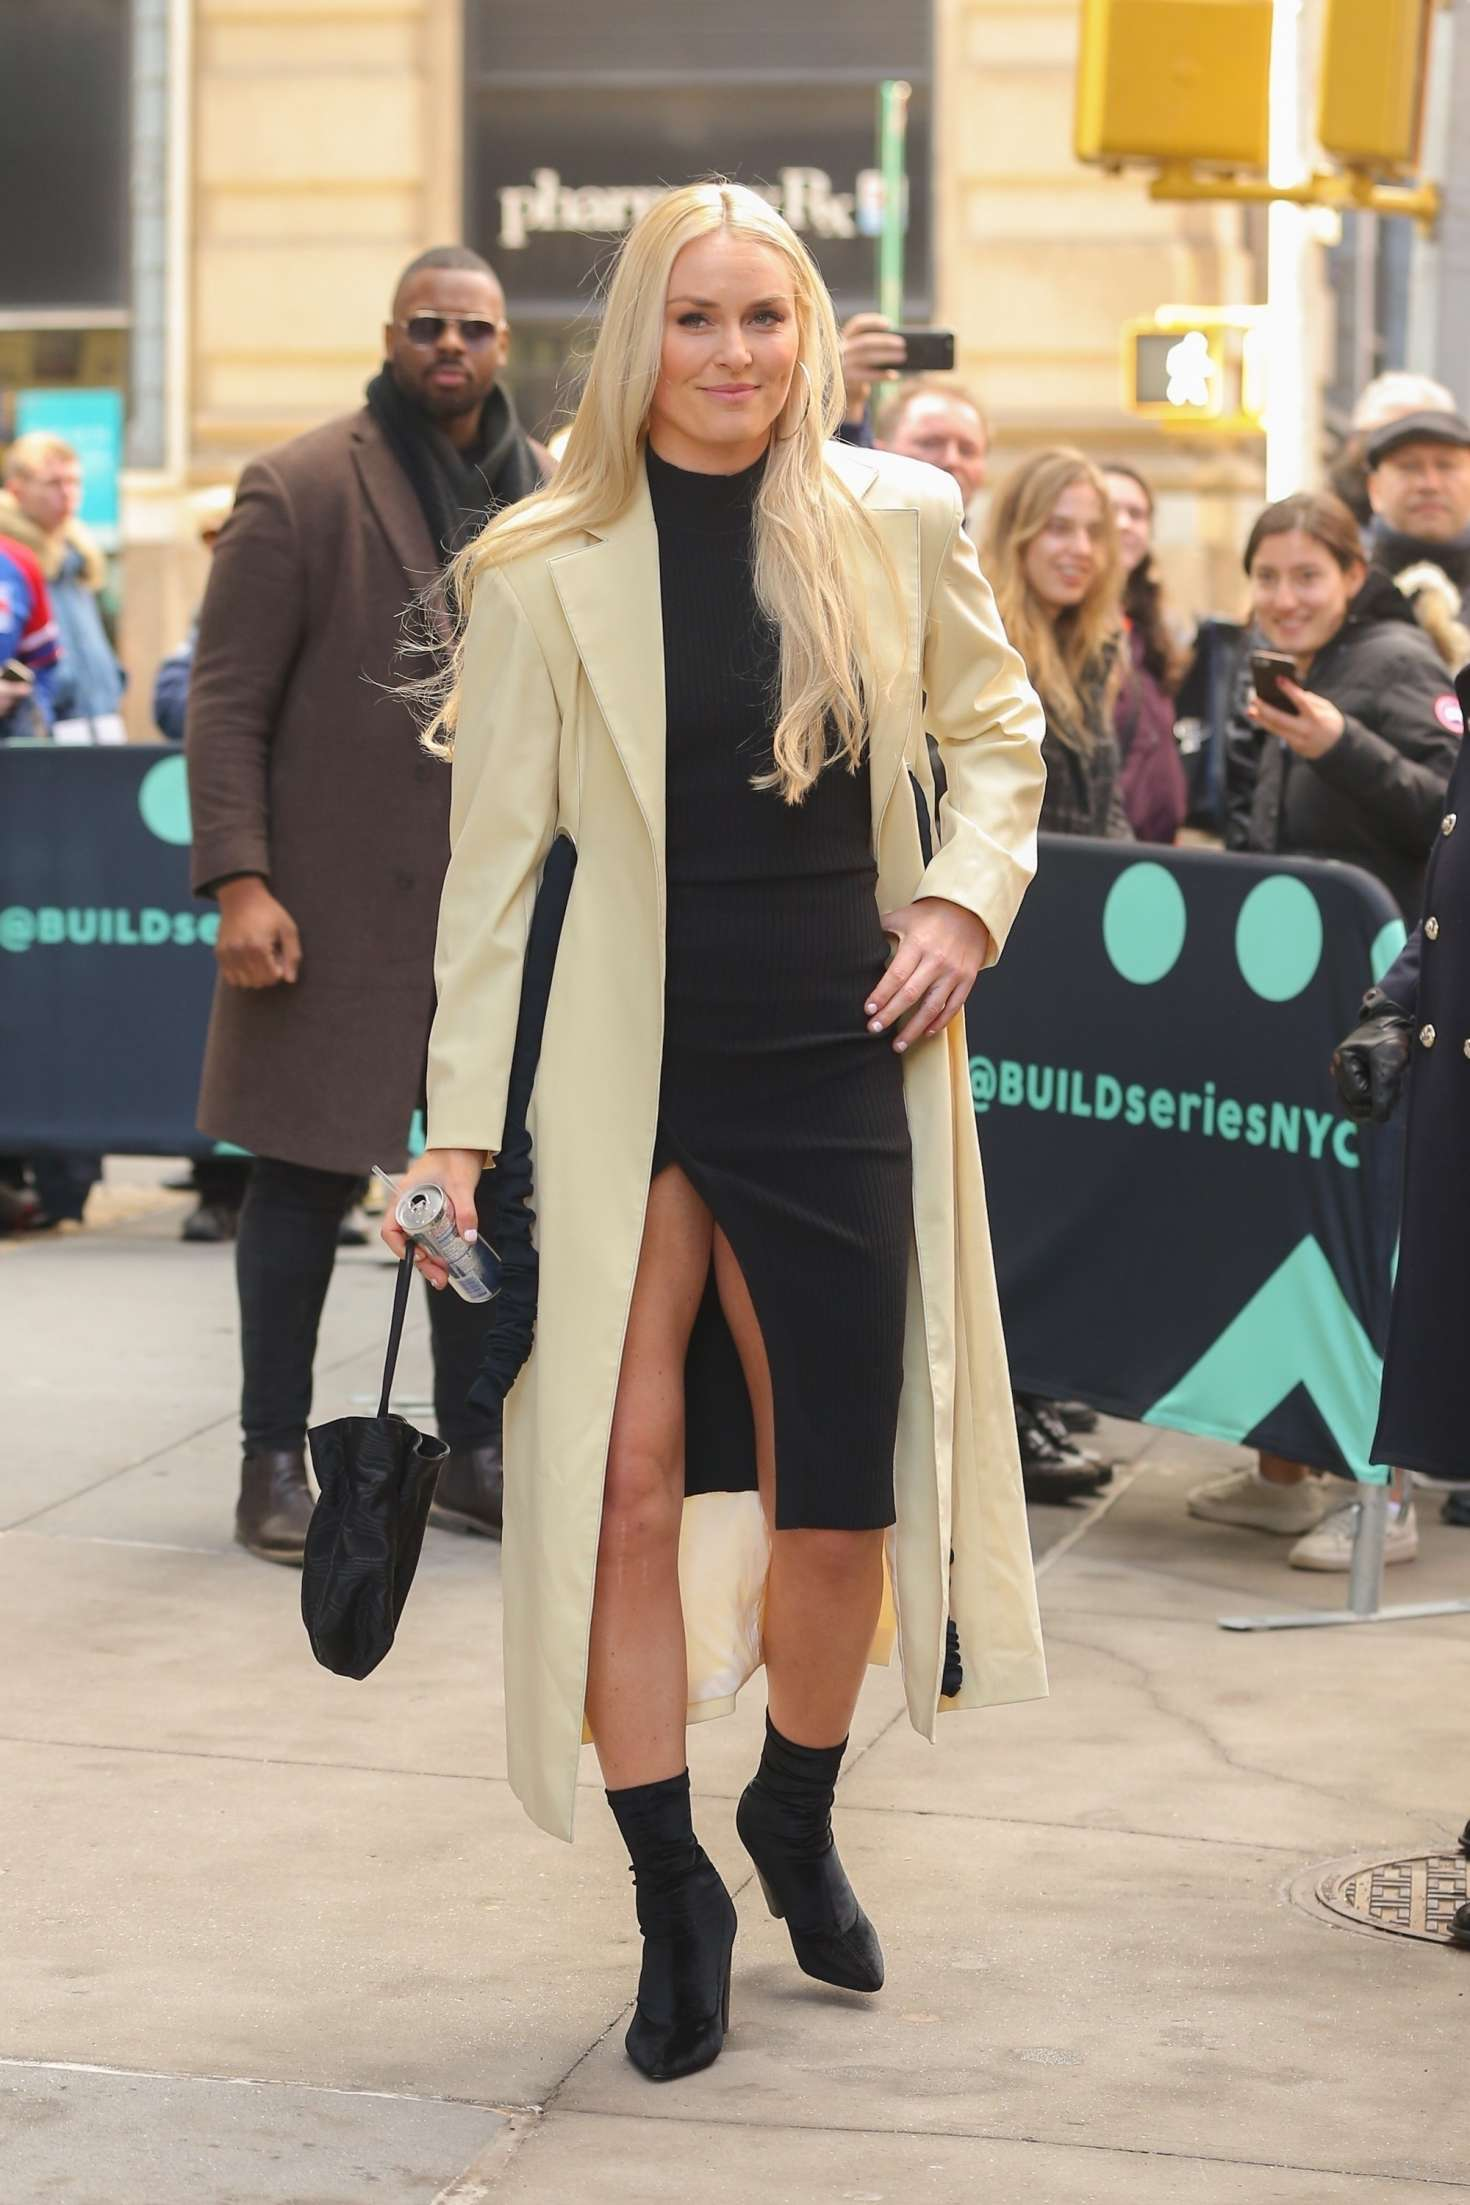 Lindsey Vonn 2019 : Lindsey Vonn: Arriving at AOL Build Series -05